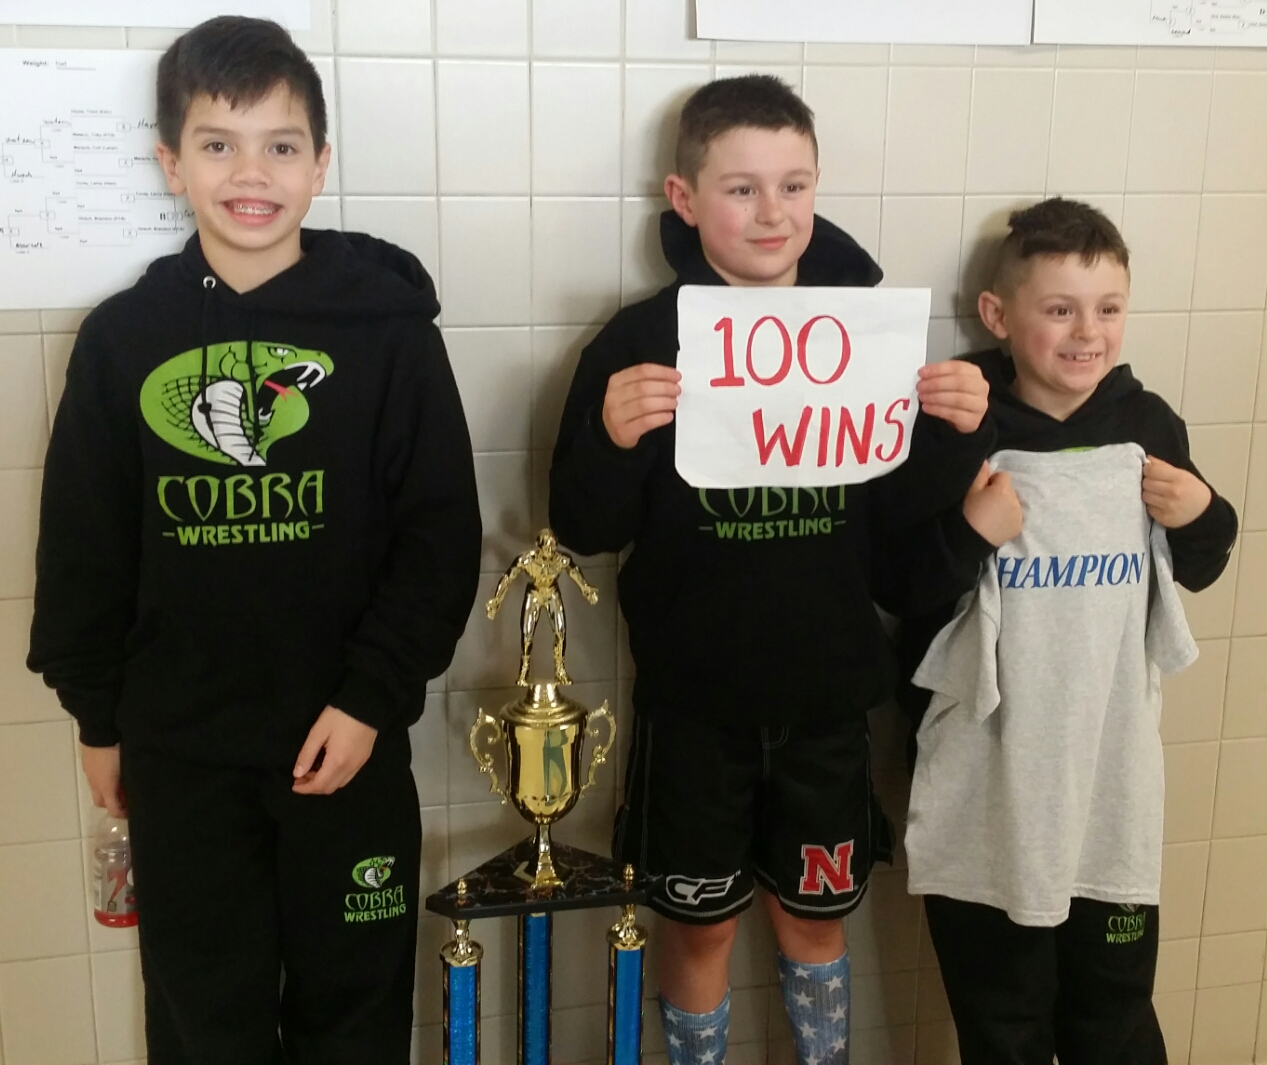 Gage LaPlante (Cobra) Gets his 100th win at the 17th Annual Panama Youth Wrestling Tournament